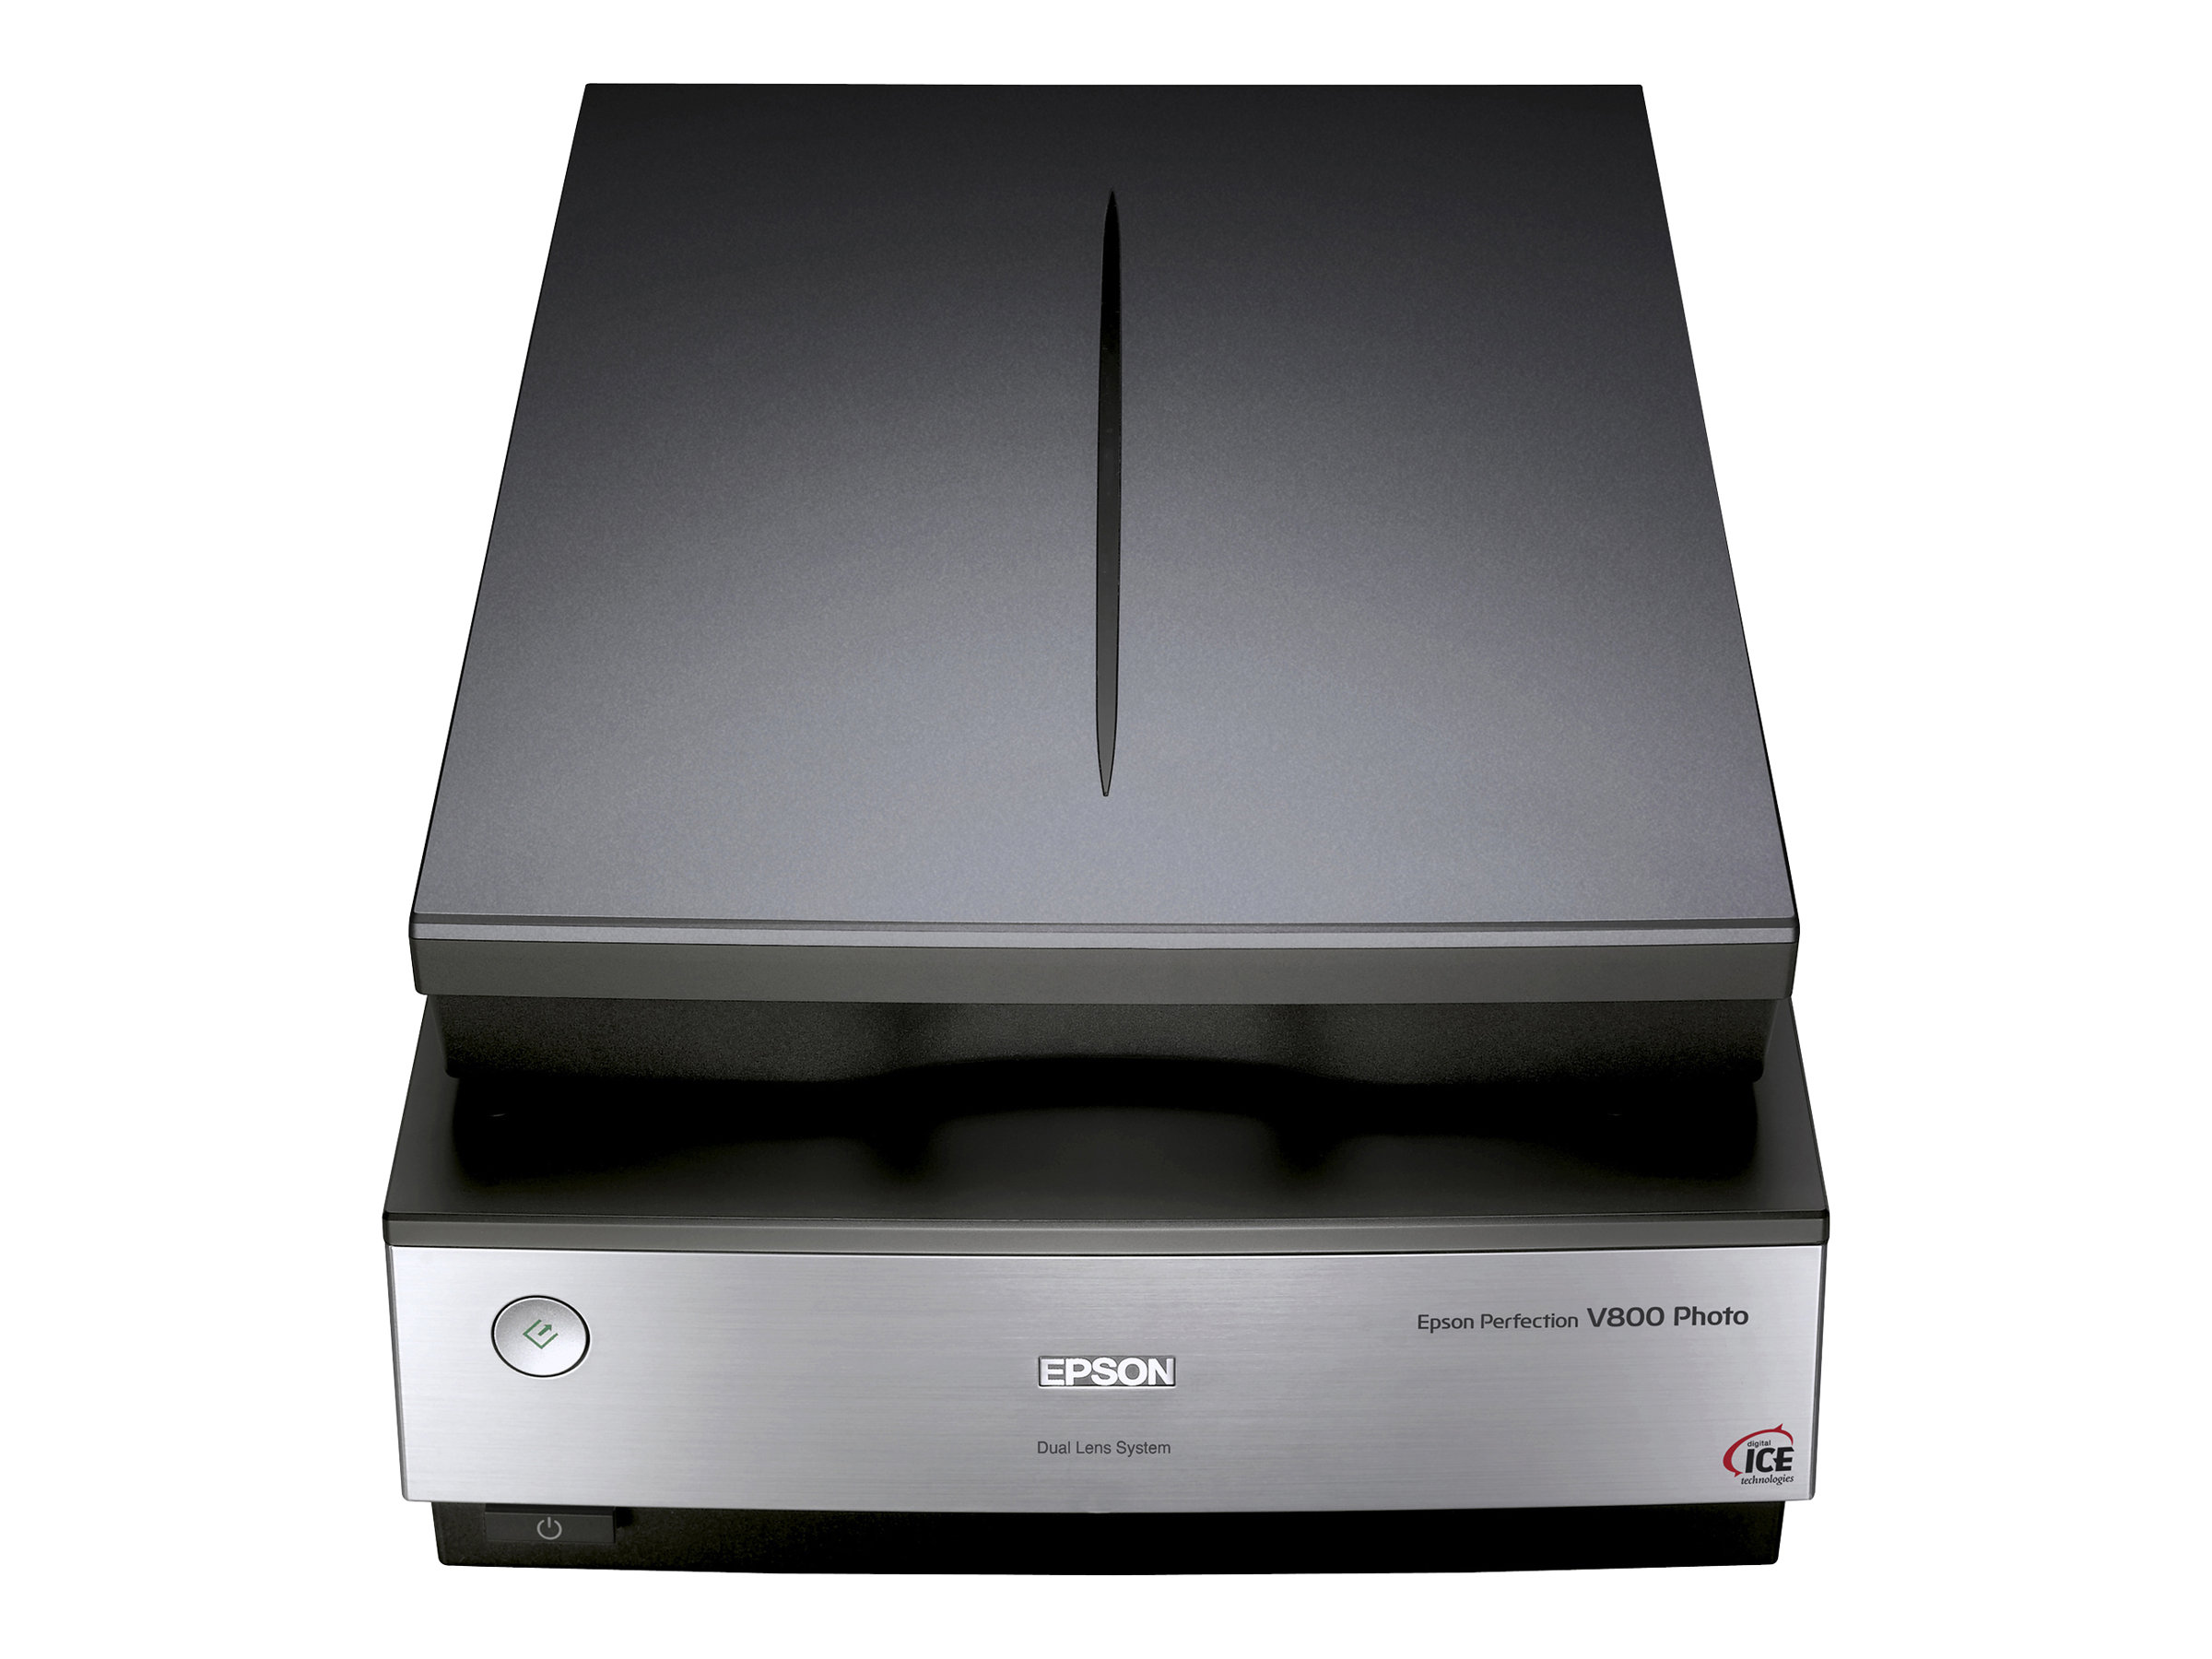 Image for Epson Perfection V800 Photo - Flatbed Scanner - Desktop - Usb 2.0 from Circuit City